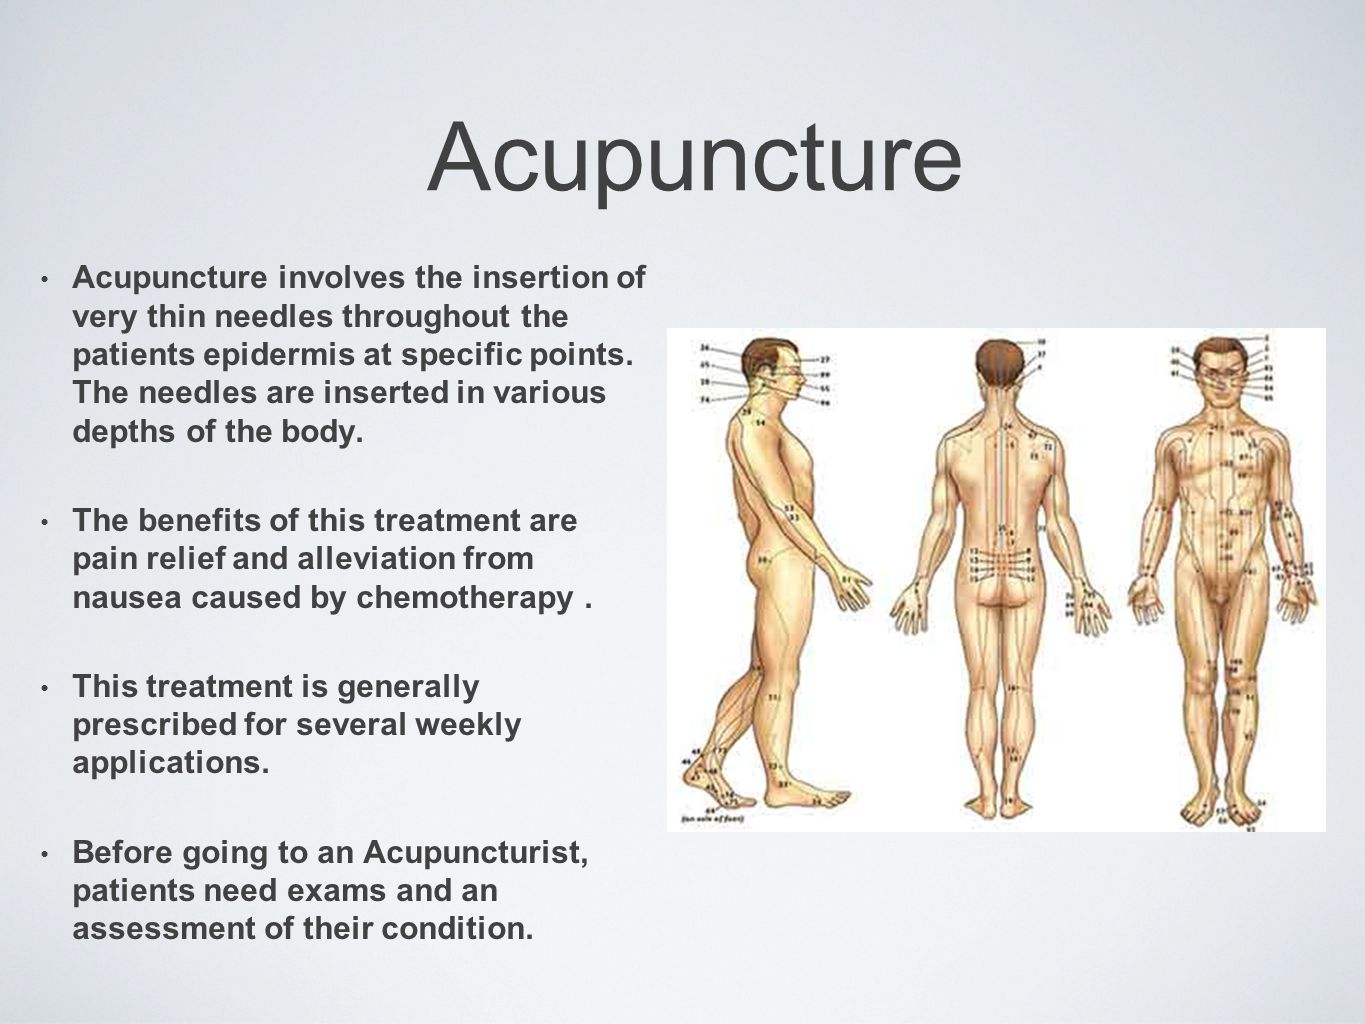 Acupuncture Acupuncture involves the insertion of very thin needles throughout the patients epidermis at specific points.